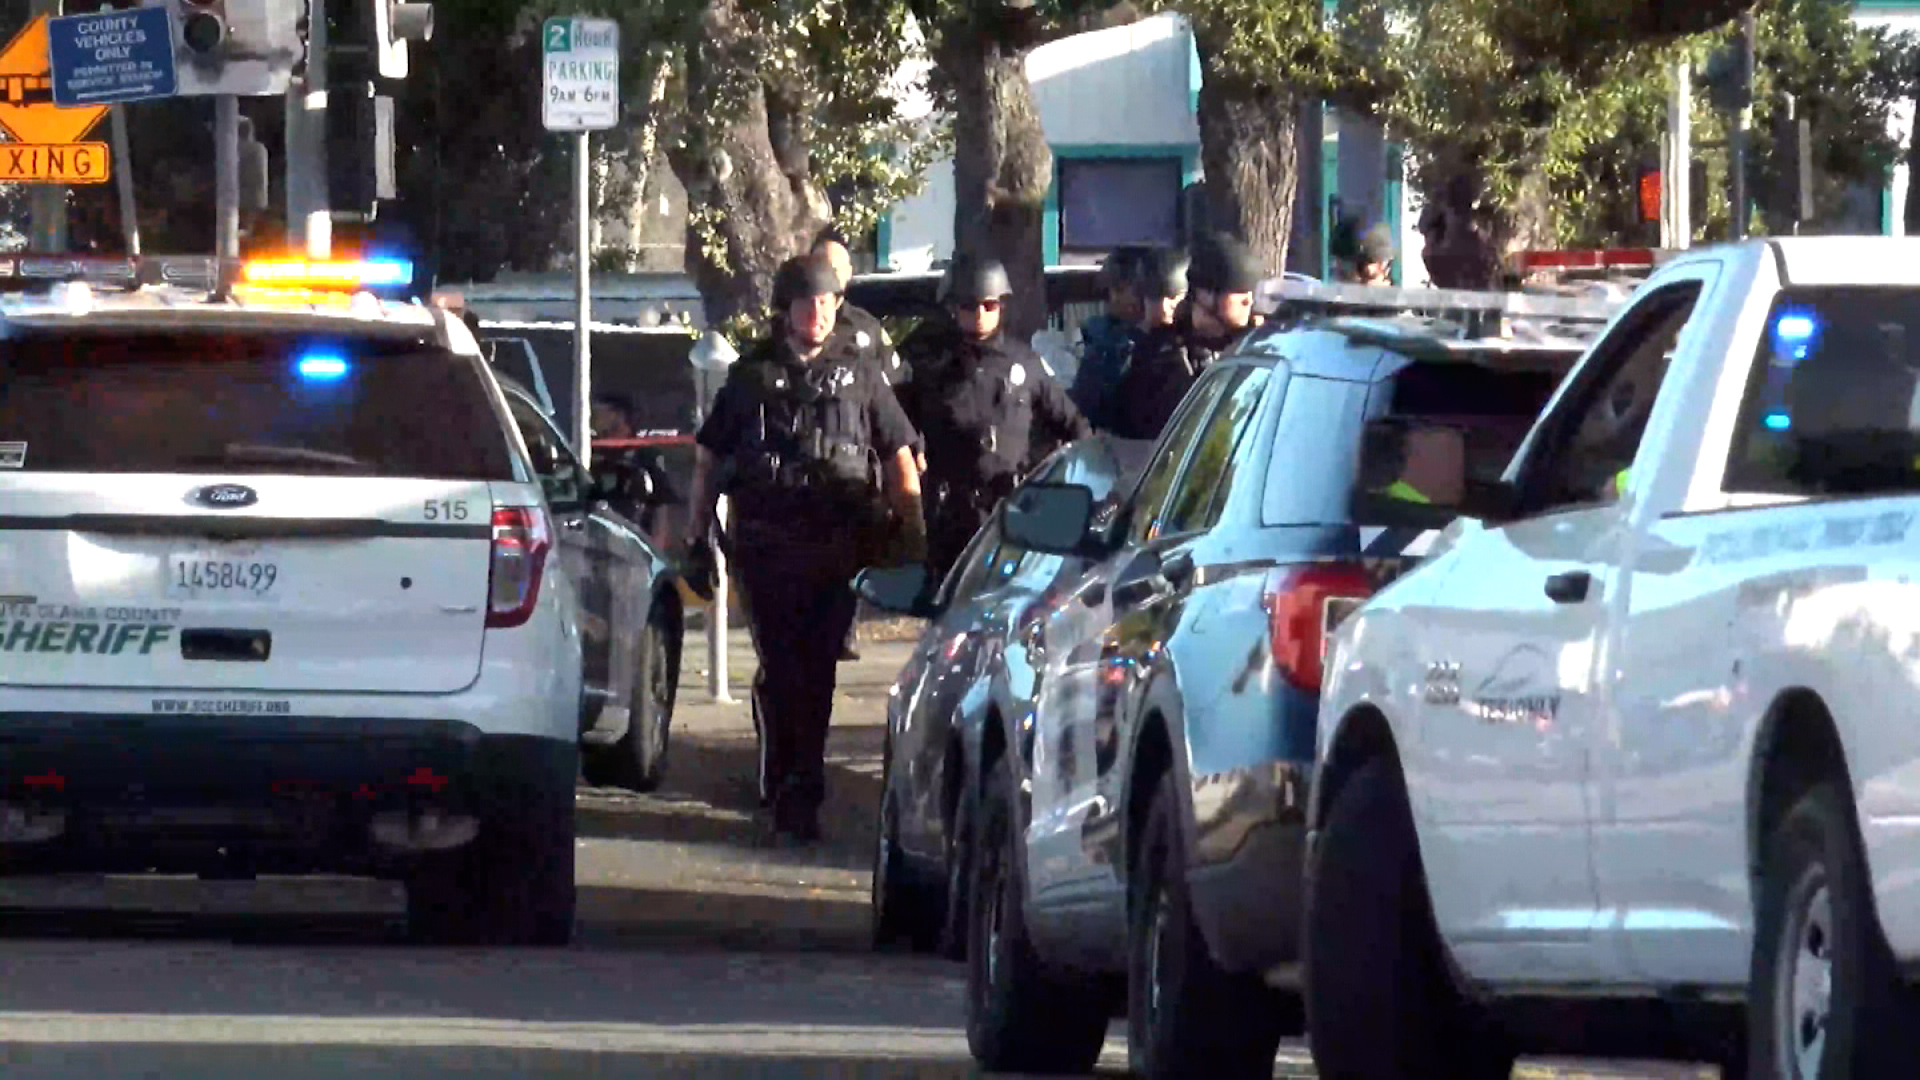 Several people were killed and wounded in a shooting in San Jose, California